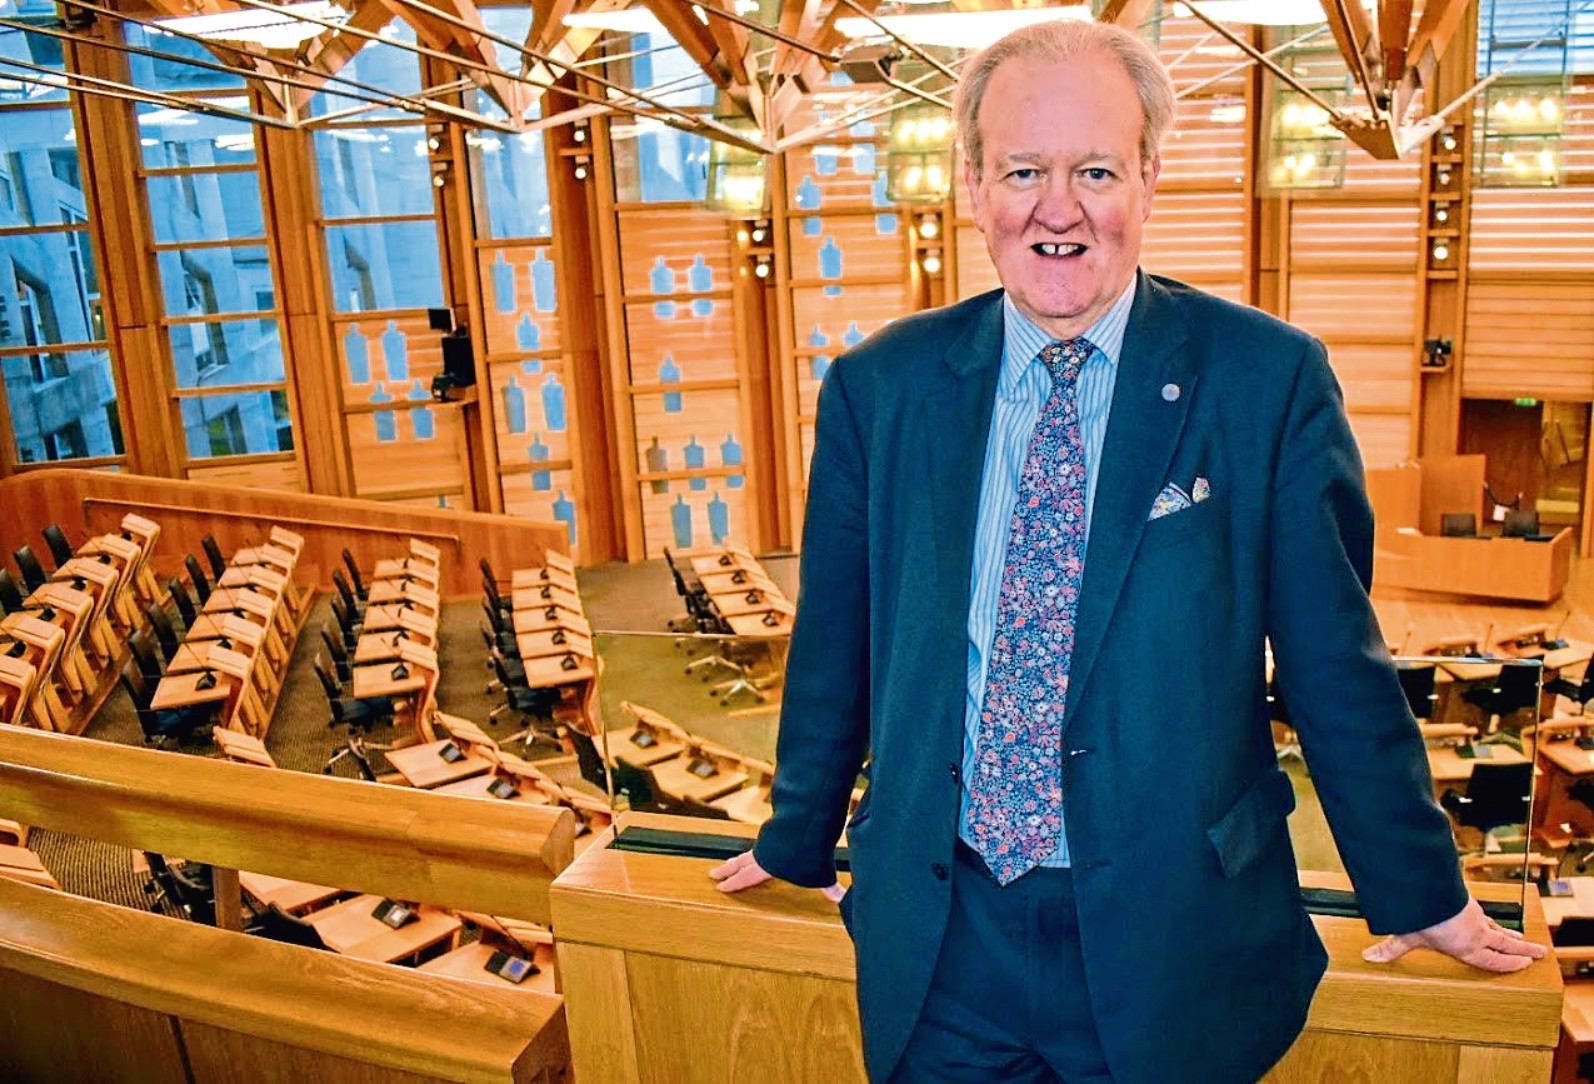 Stewart Stevenson MSP has lodged a motion in parliament thanking the mystery donor